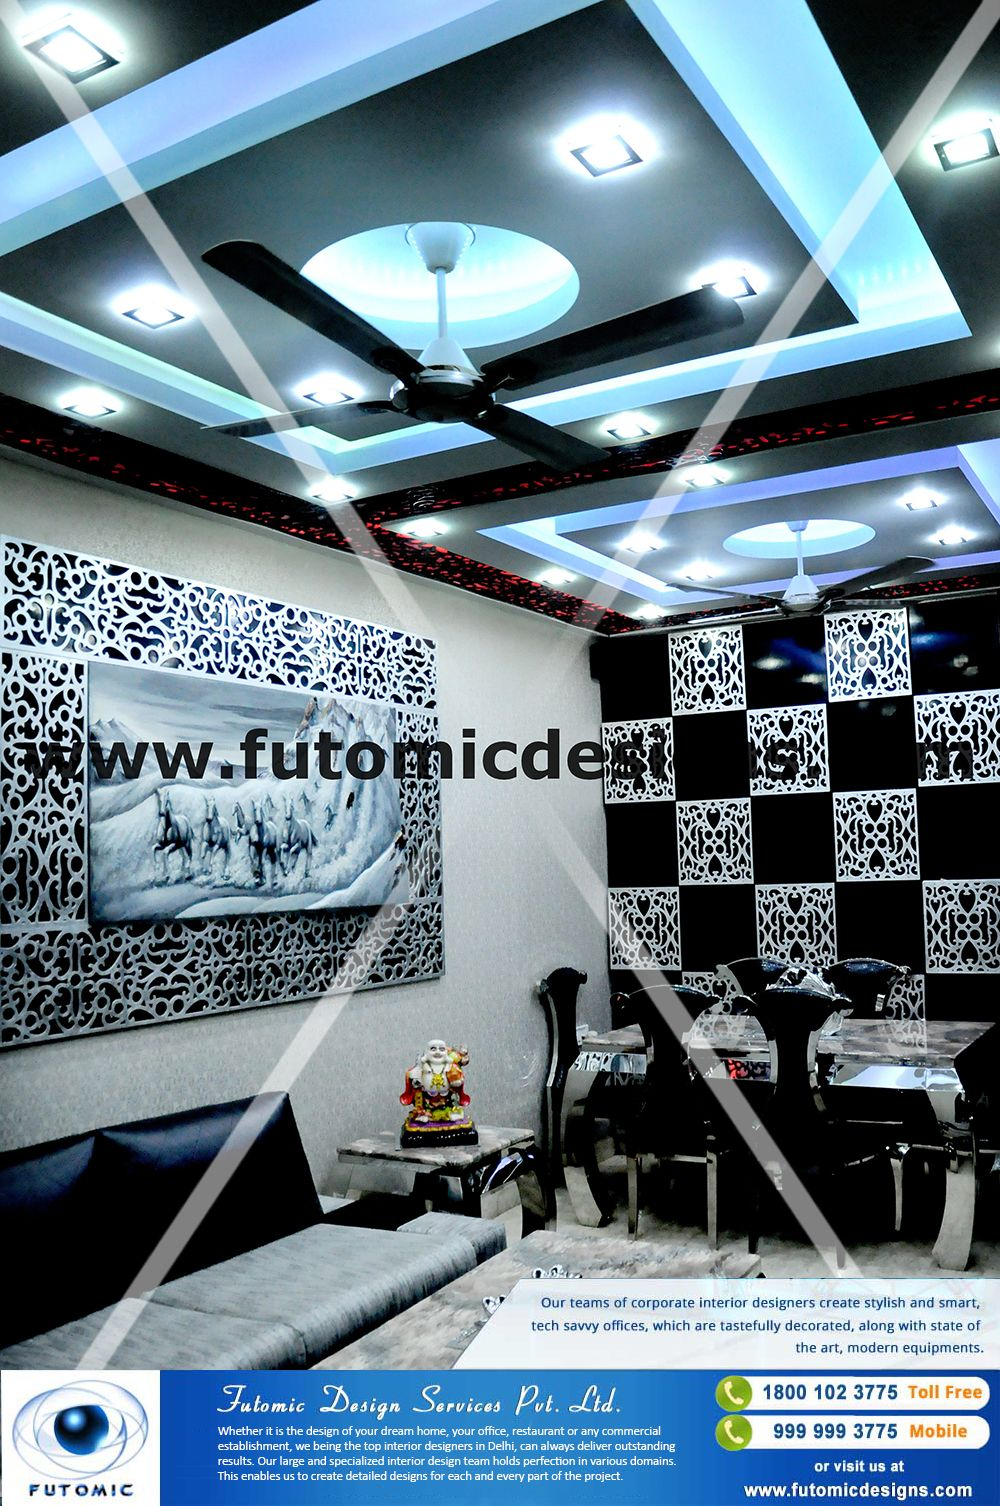 Whether it is the design of your dream home office restaurant or any also pin by futomic services pvt ltd on expert interior rh in pinterest